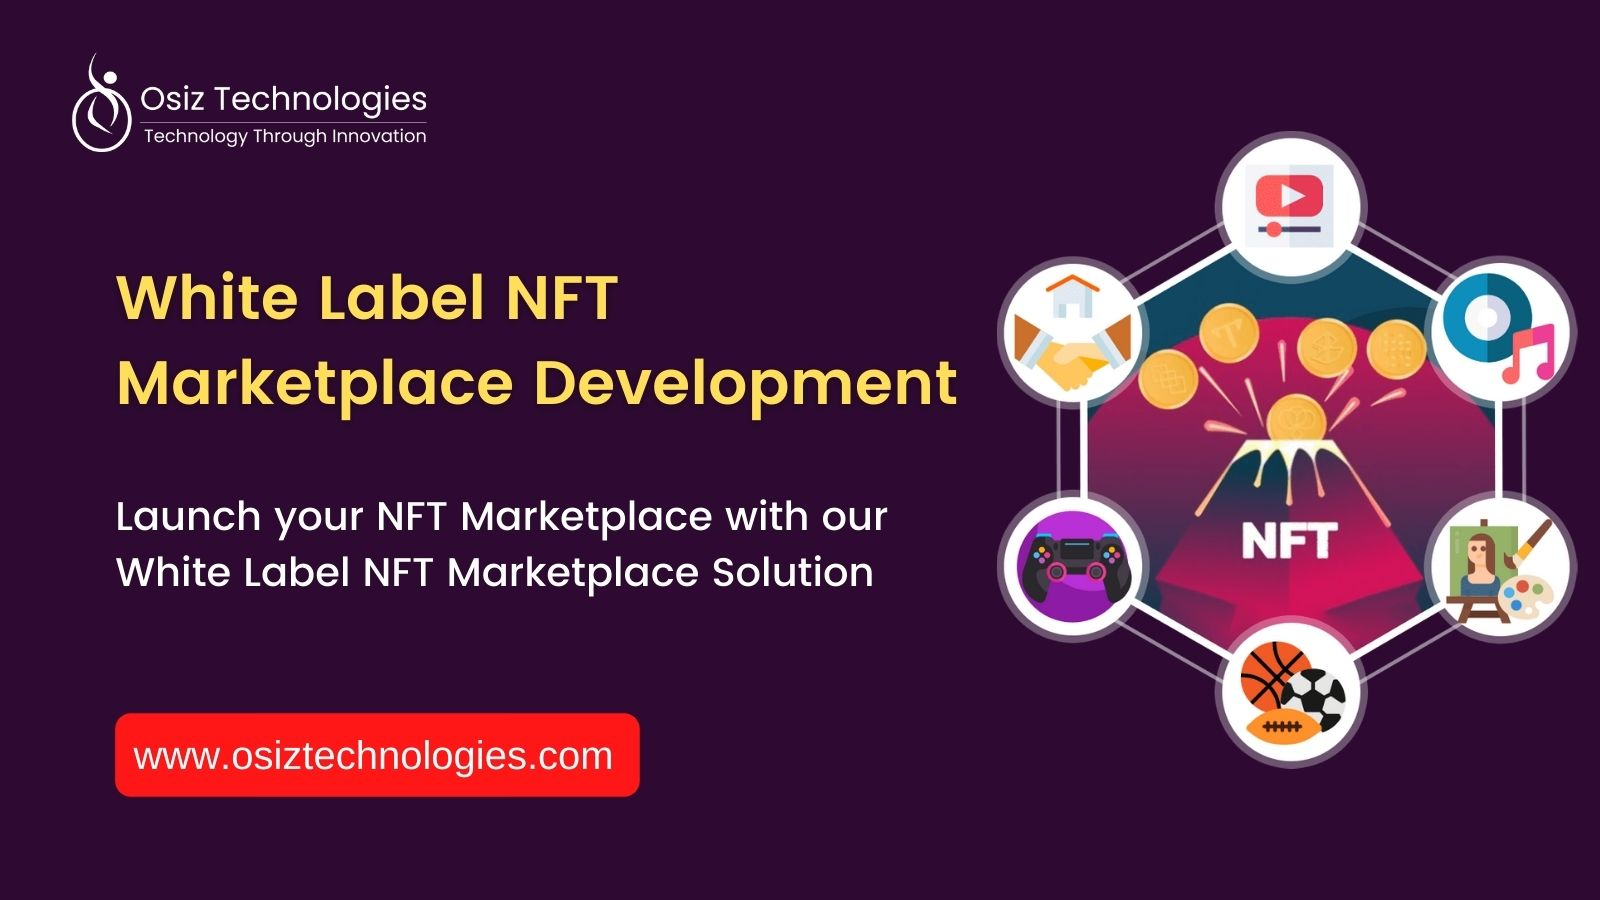 Launch Your Own Non-Fungible Token (NFT) Marketplace With Our Cost Effective White Label NFT Marketplace Development Services